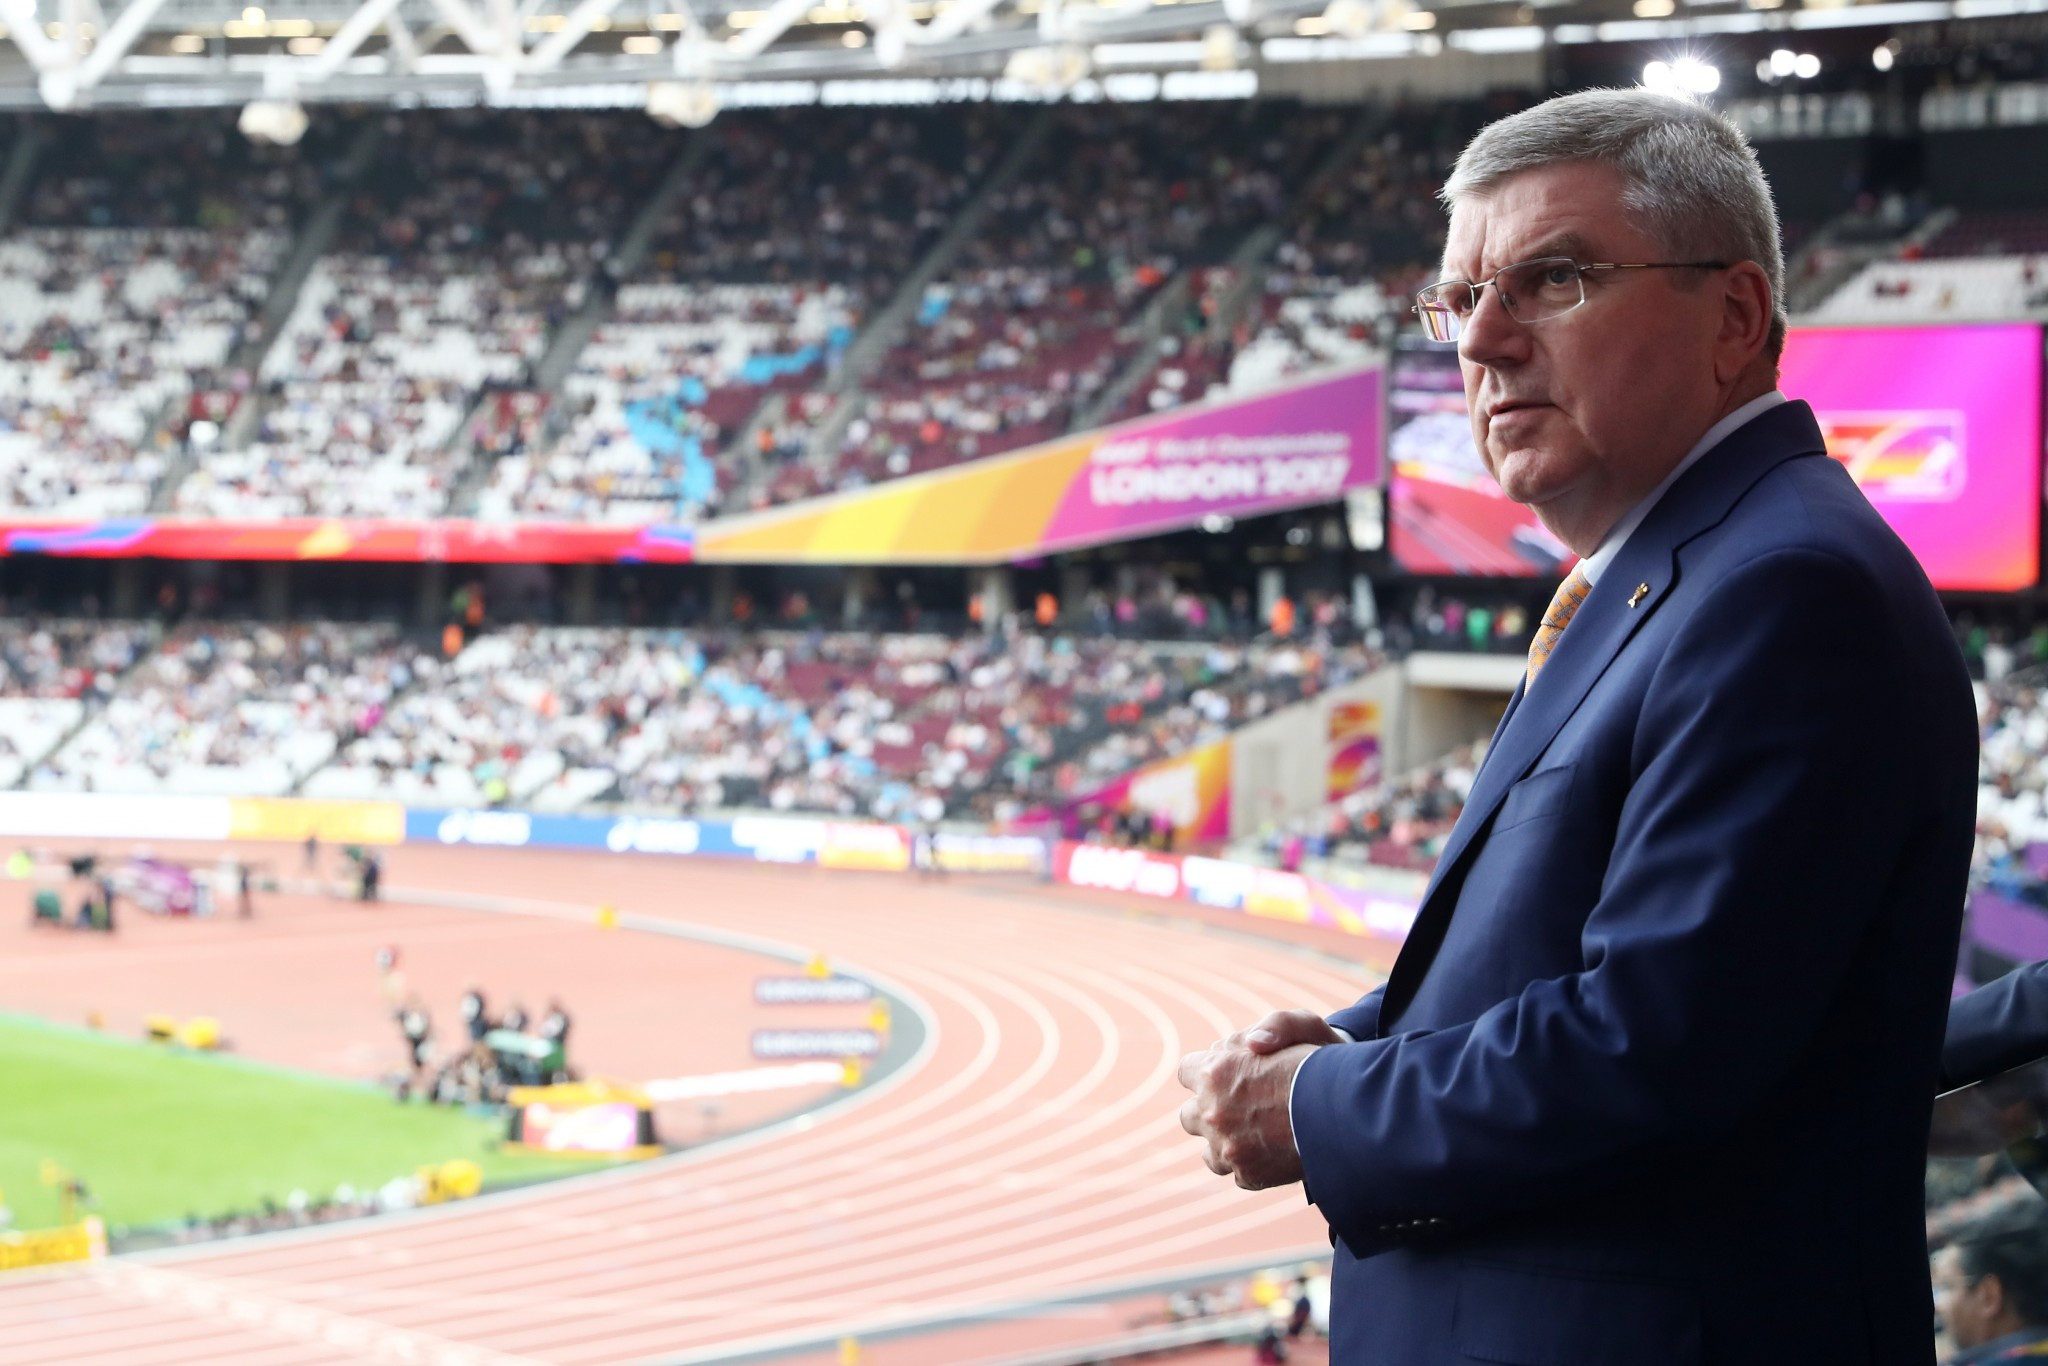 IOC President Thomas Bach will not attend the World Wrestling Championships in Paris ©Getty Images